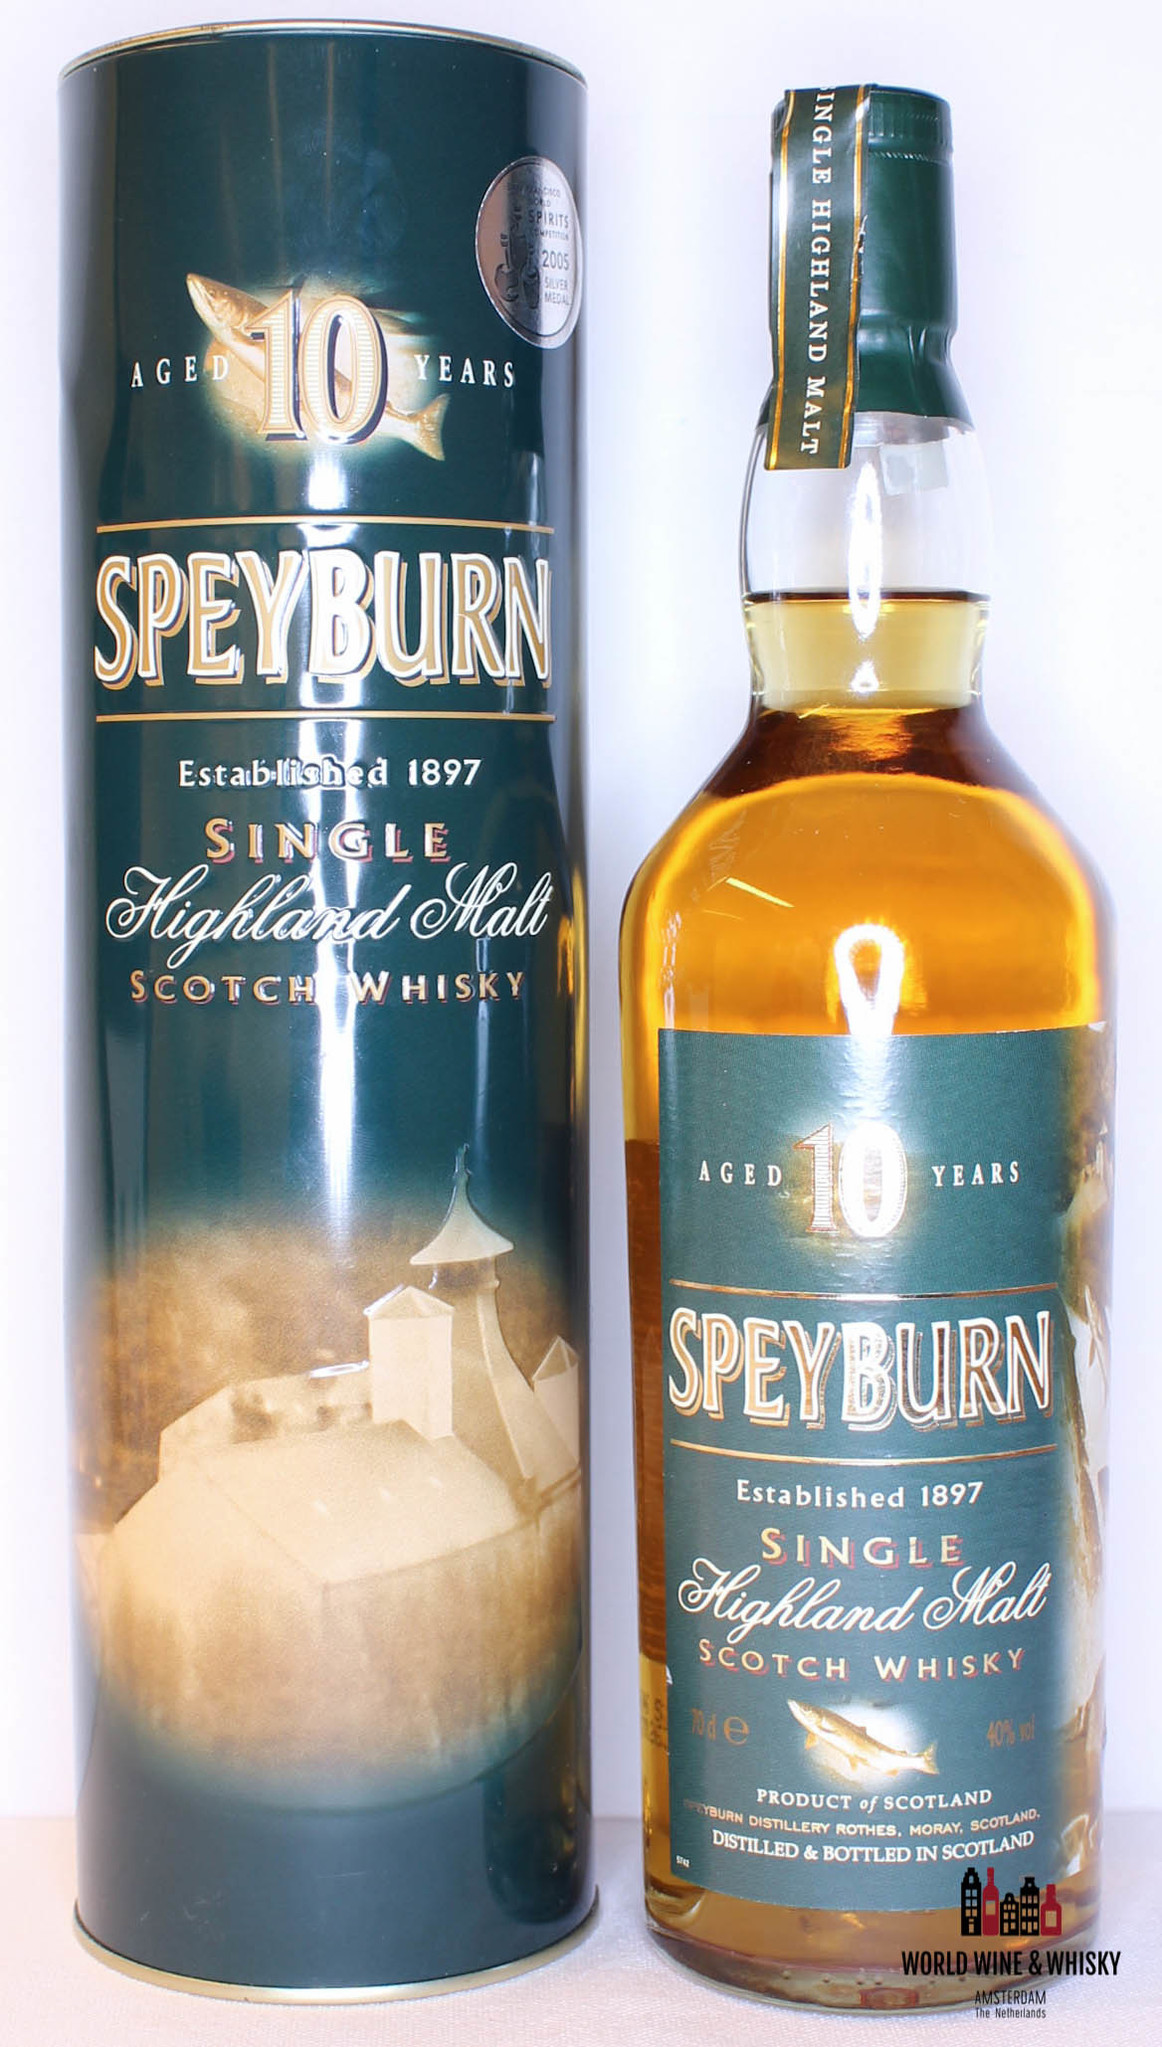 Speyburn 10 Years Old Fish Edition 40 700ml At World Wine Whisky World Wine Whisky